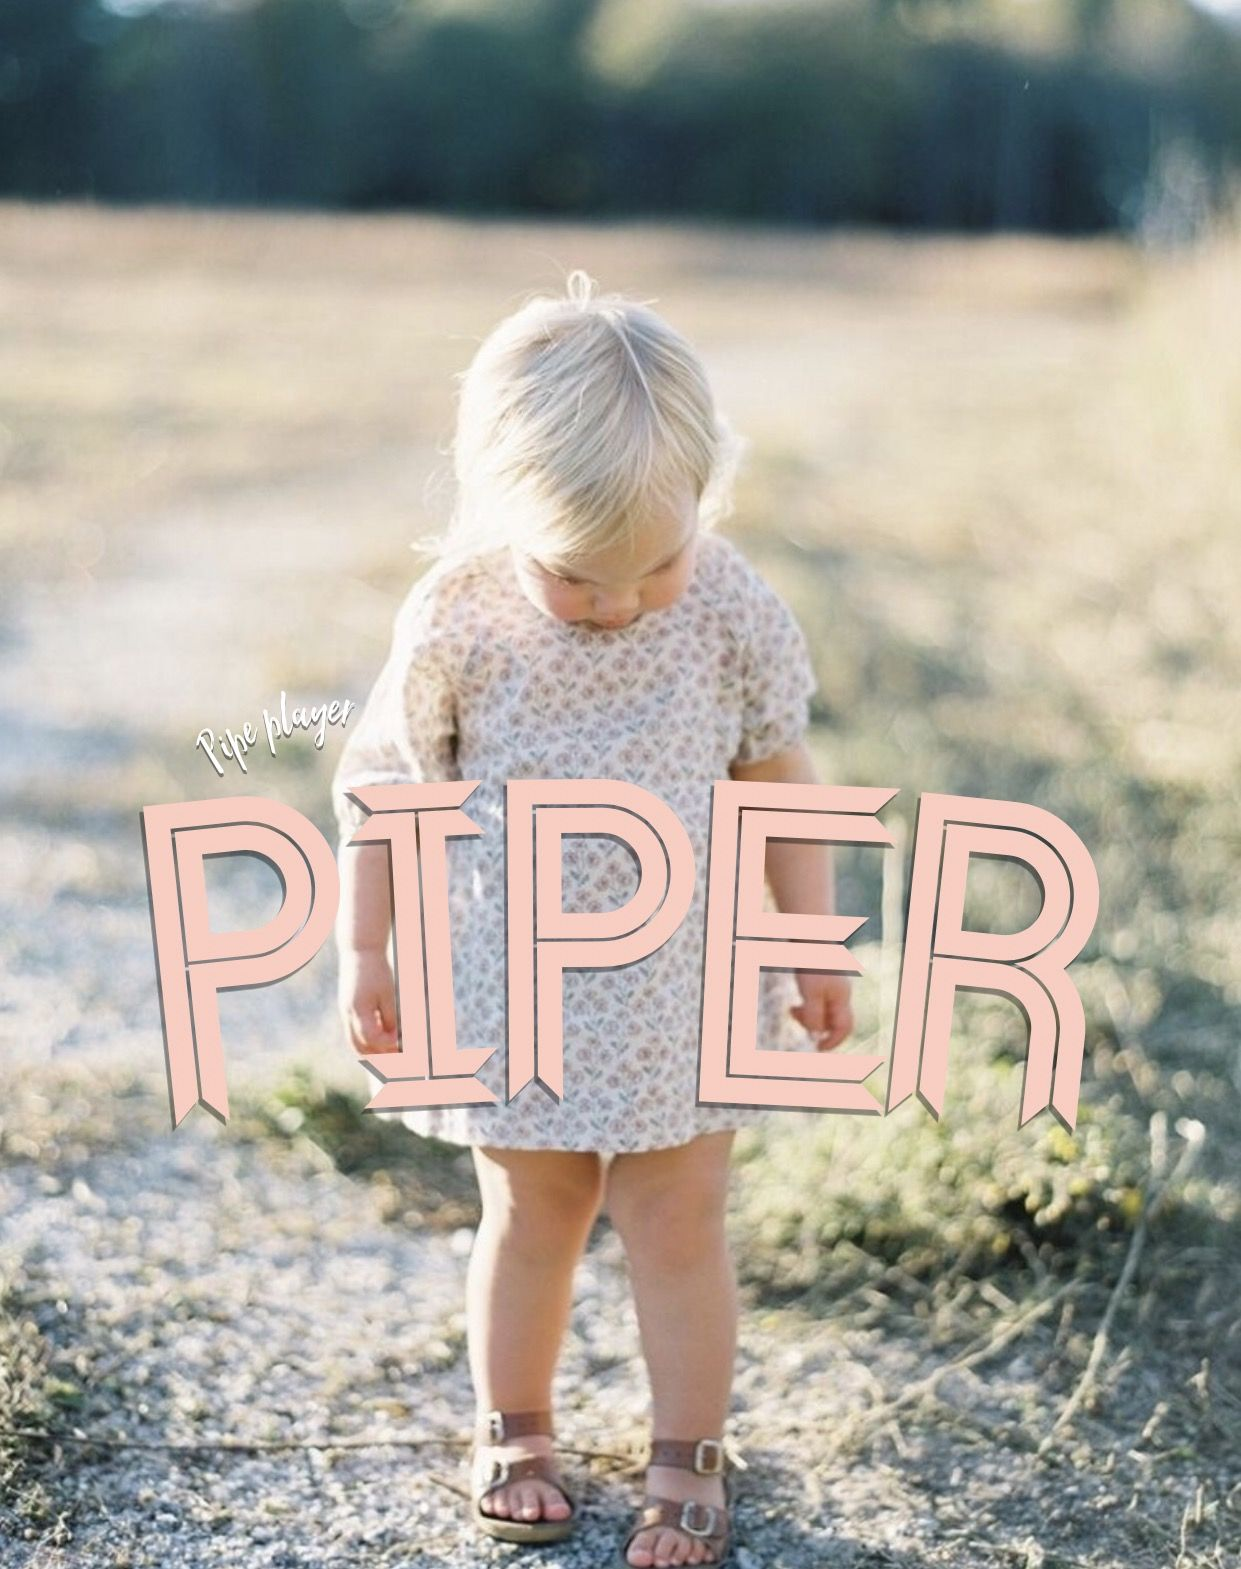 Piper, meaning: pipe player, English names, names, P baby